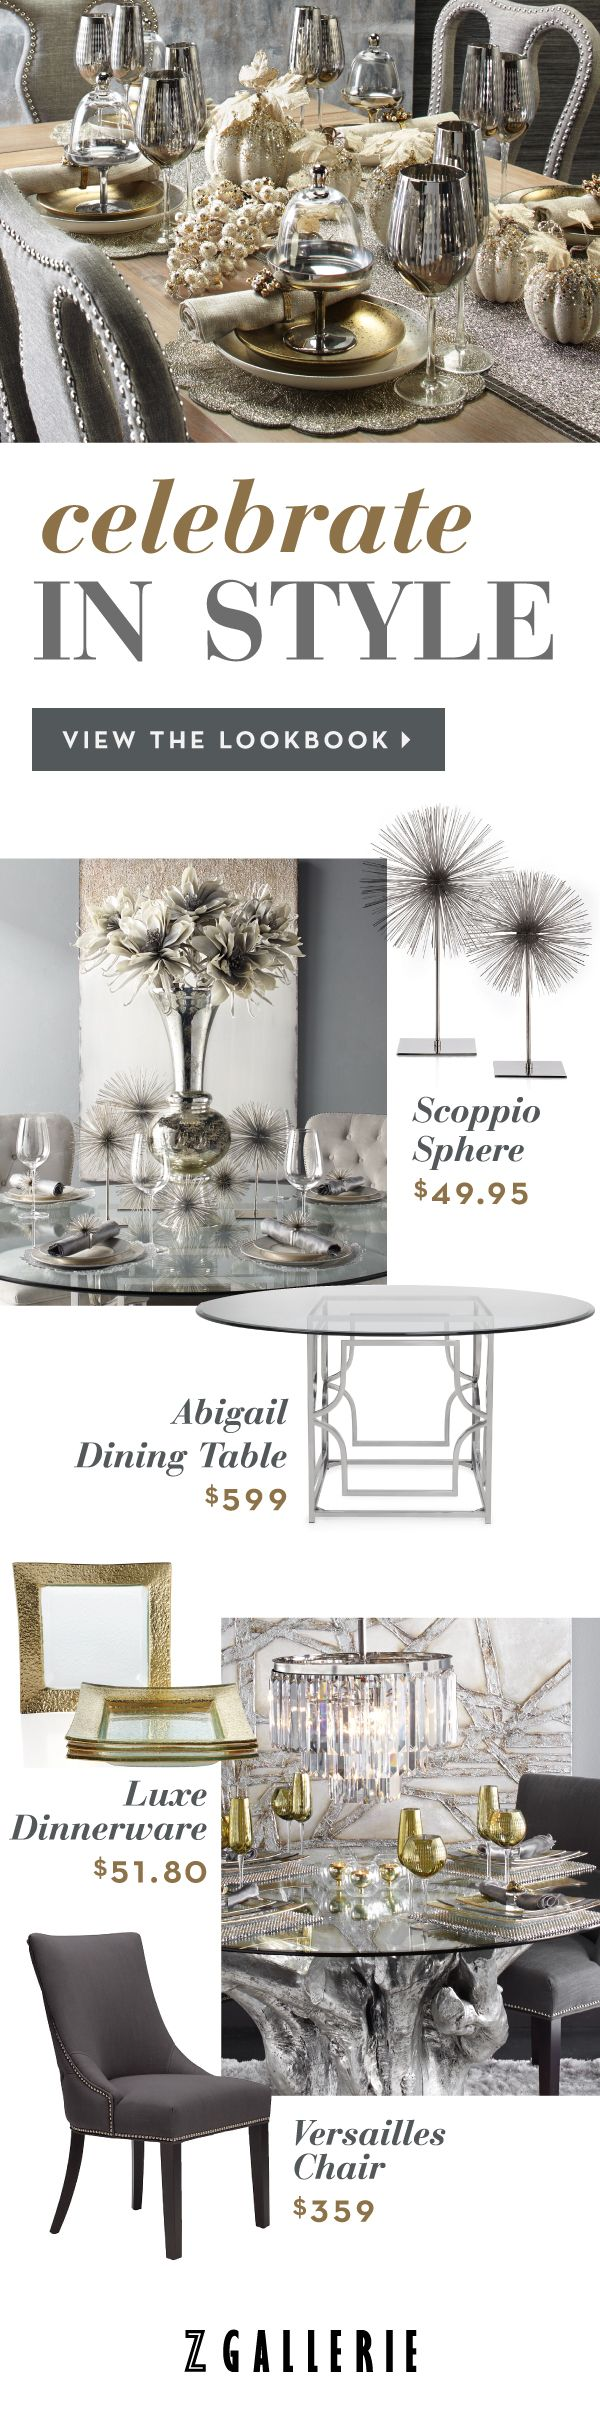 Celebrate in Style: discover this month's Z Gallerie Lookbook and shop products that create instant  *wow* moments for your home.